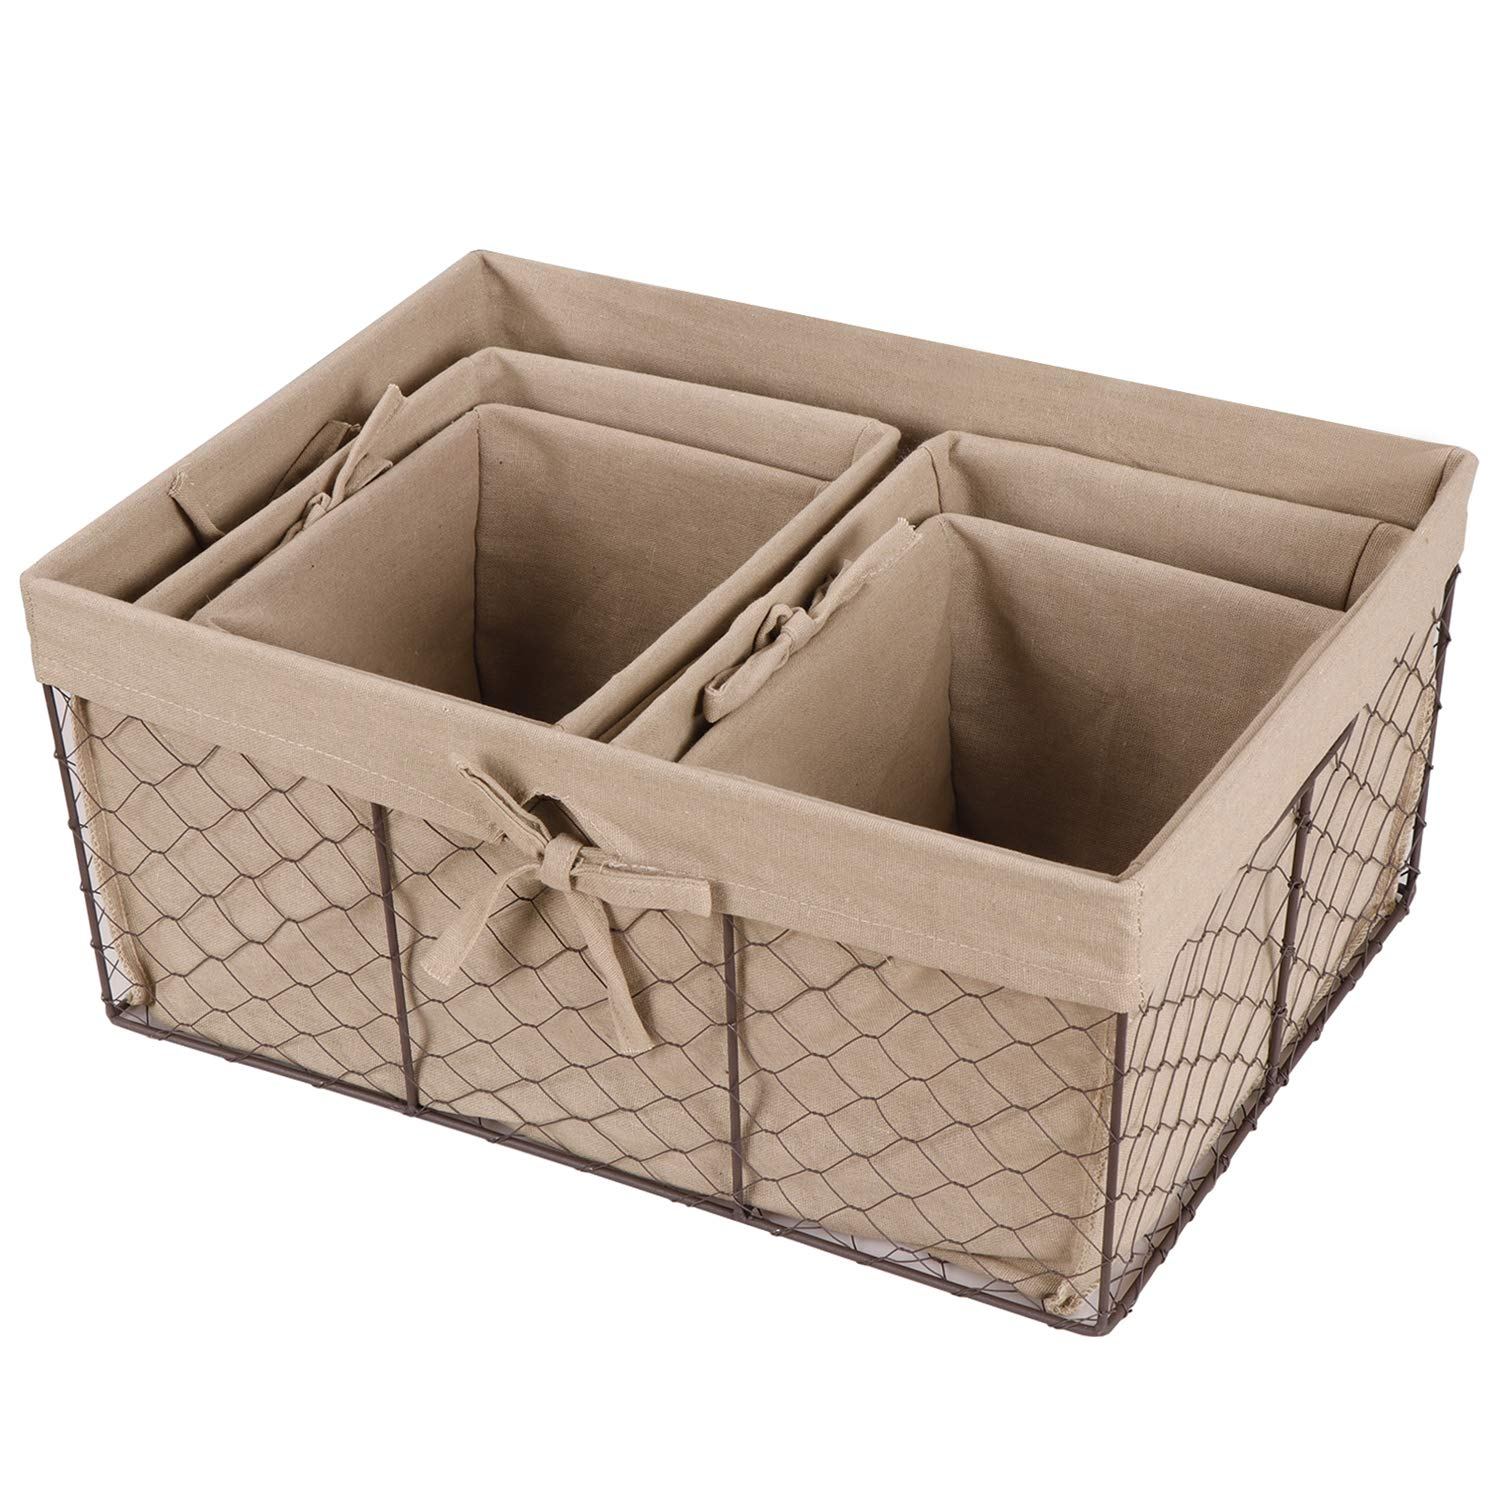 F2C Home Decor Set of 5 Vintage Toy Fruit Clothes Metal Chicken Wire Storage Basket Organizer W/Removable Fabric Liner for Bathroom Kitchen Office Nursery Laundry Bedroom Shelf by F2C (Image #2)